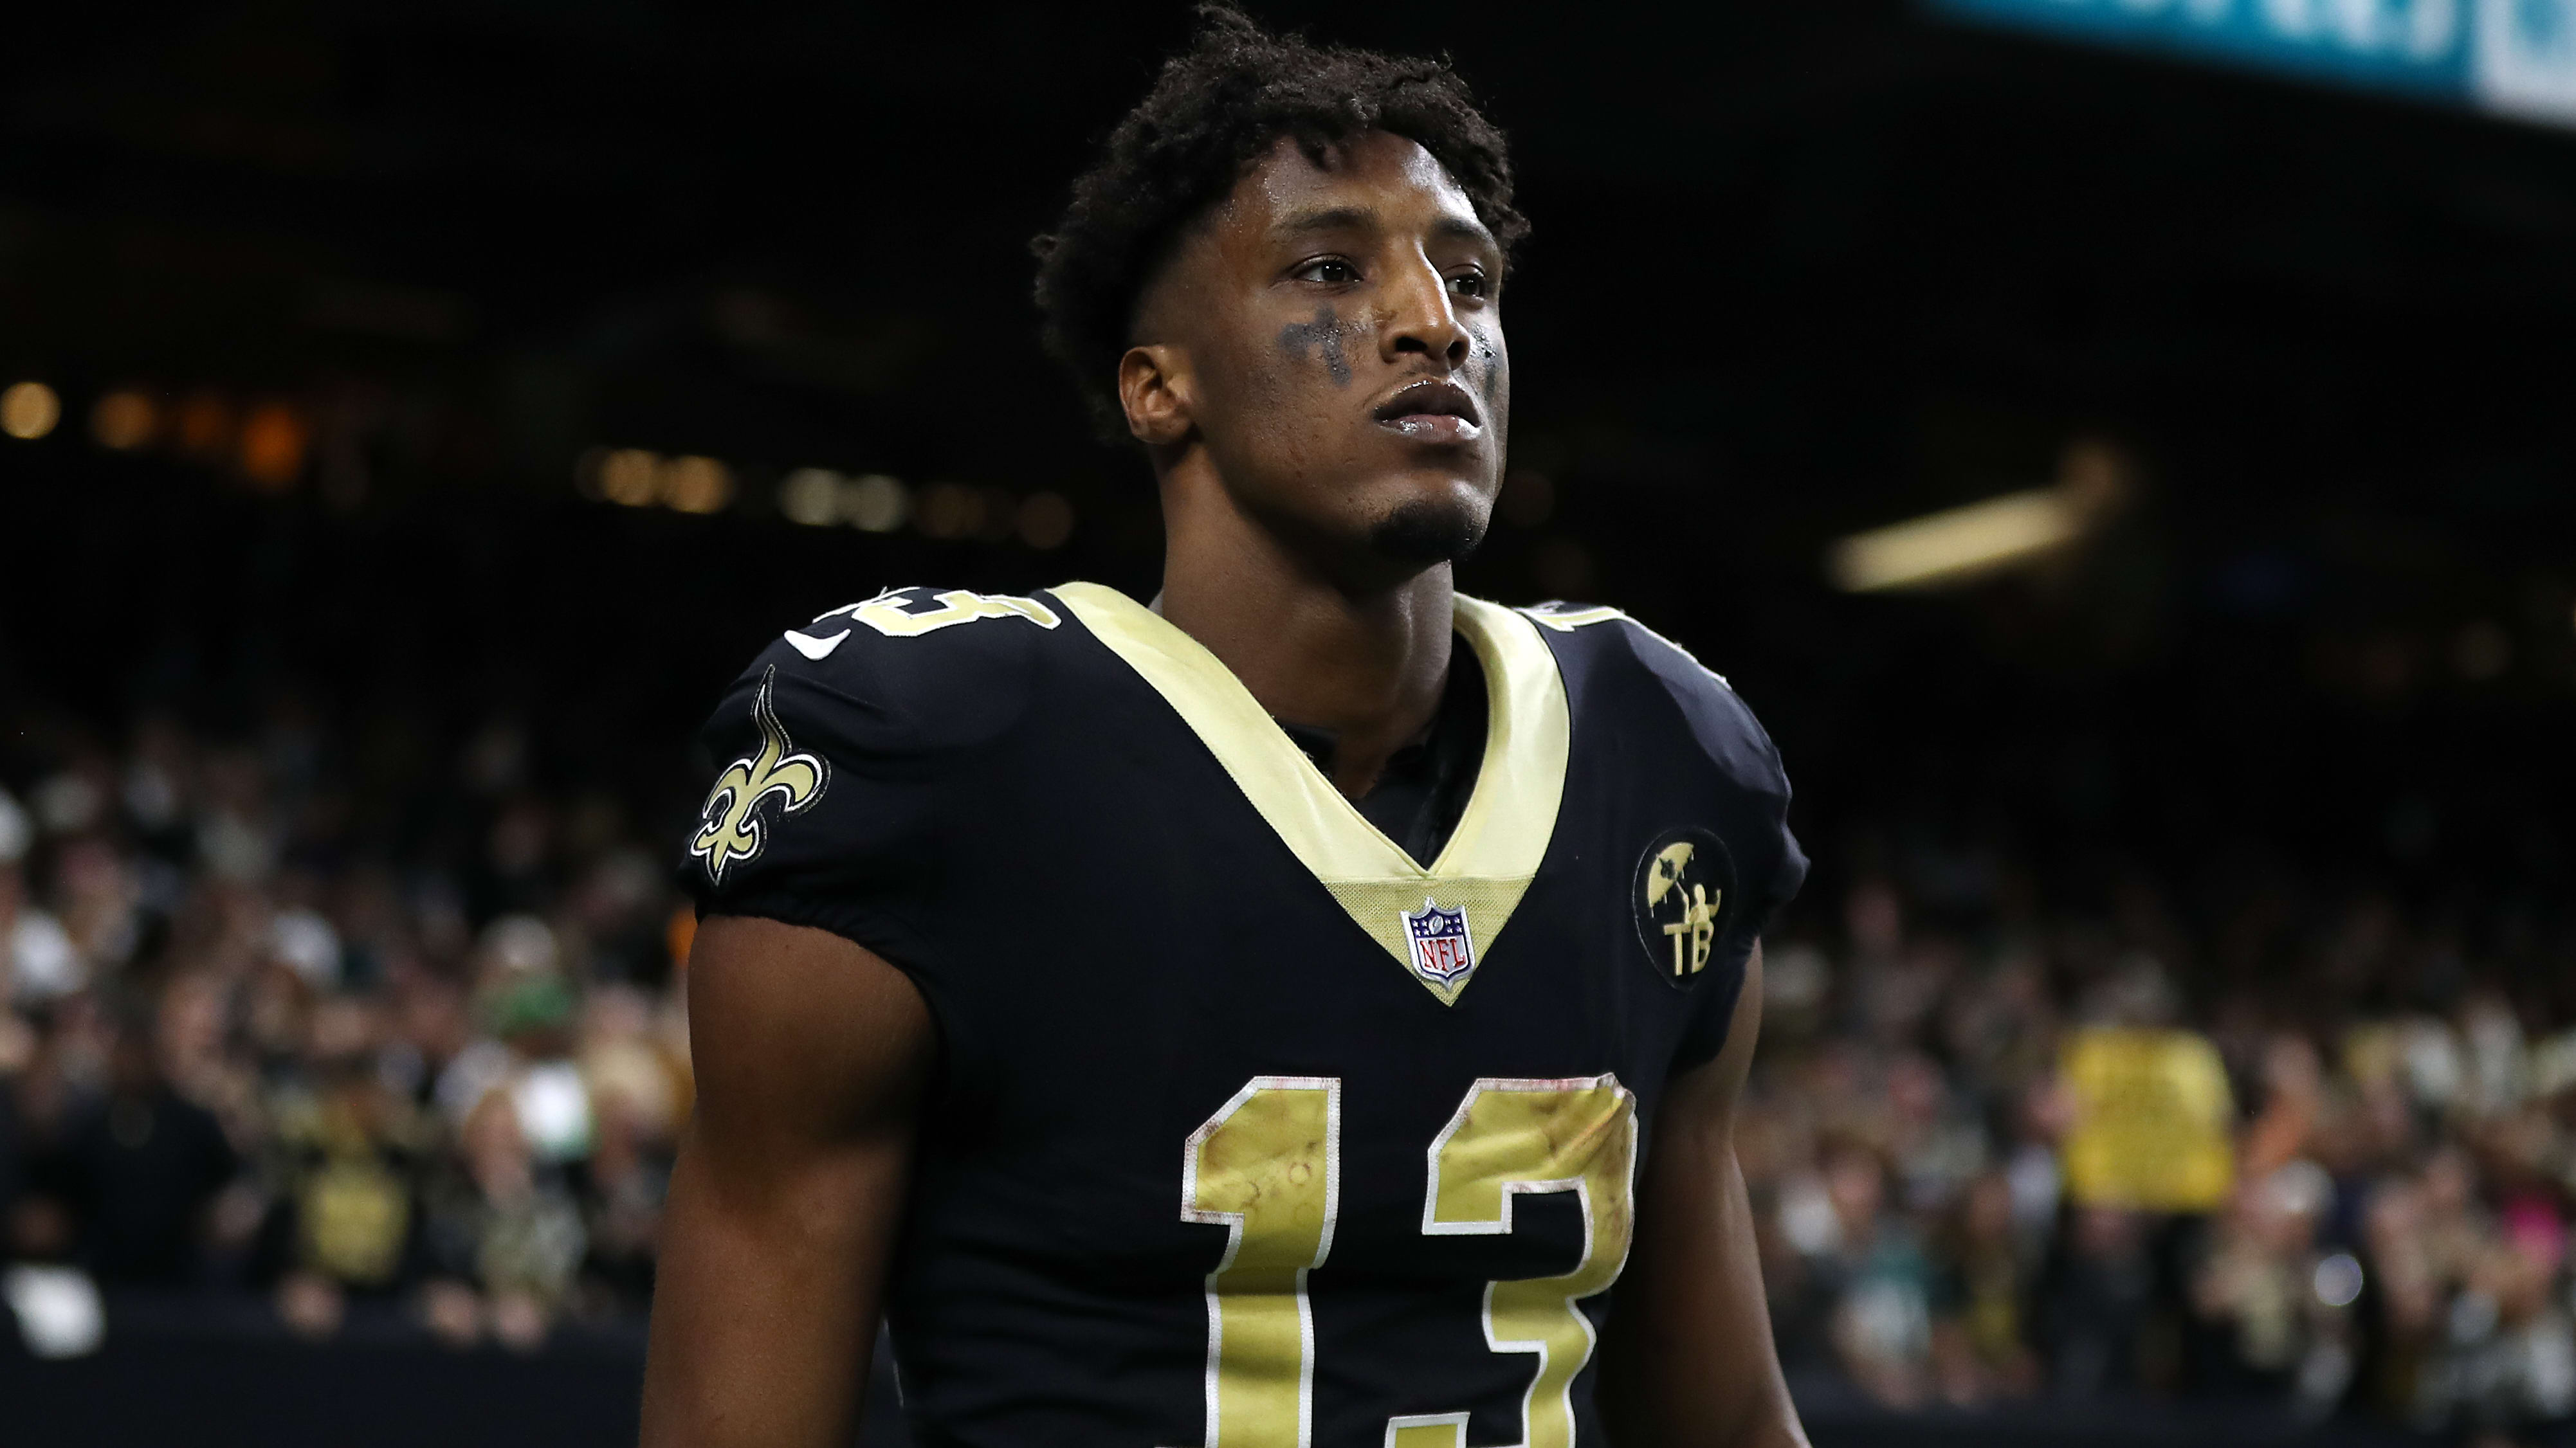 NEW ORLEANS, LOUISIANA - JANUARY 13: Michael Thomas #13 of the New Orleans Saints during the NFC Divisional Playoff at the Mercedes Benz Superdome on January 13, 2019 in New Orleans, Louisiana. (Photo by Chris Graythen/Getty Images)